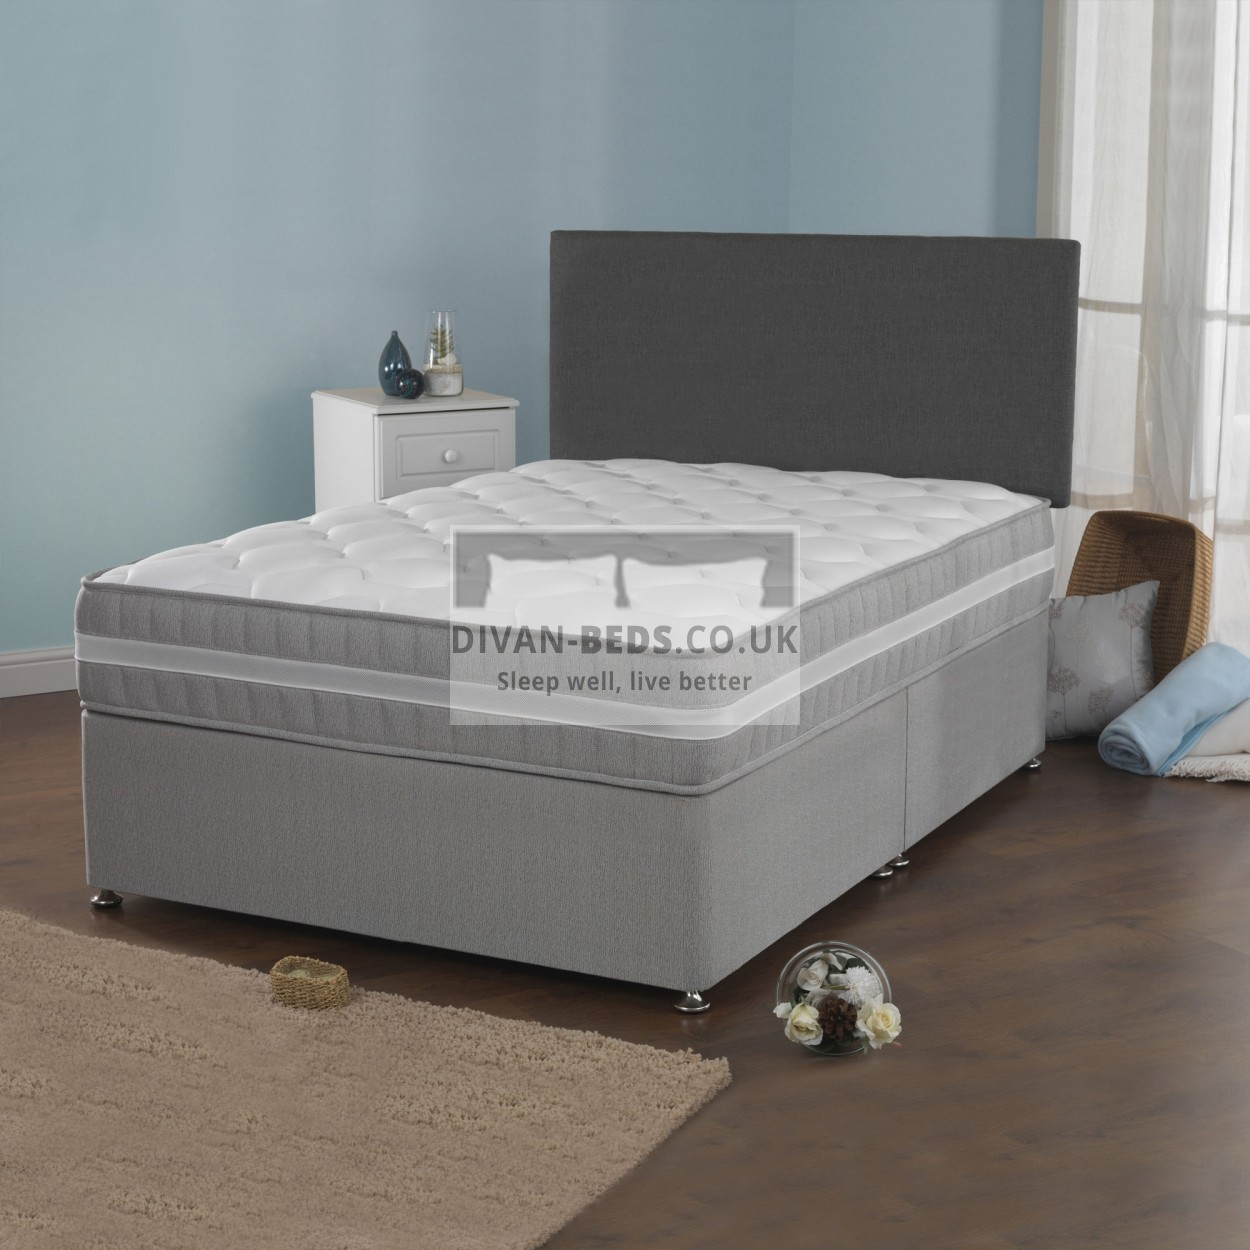 Benjamin Divan Bed With 2500 Pocket Spring Quilted Mattress With Airflow Guaranteed Cheapest